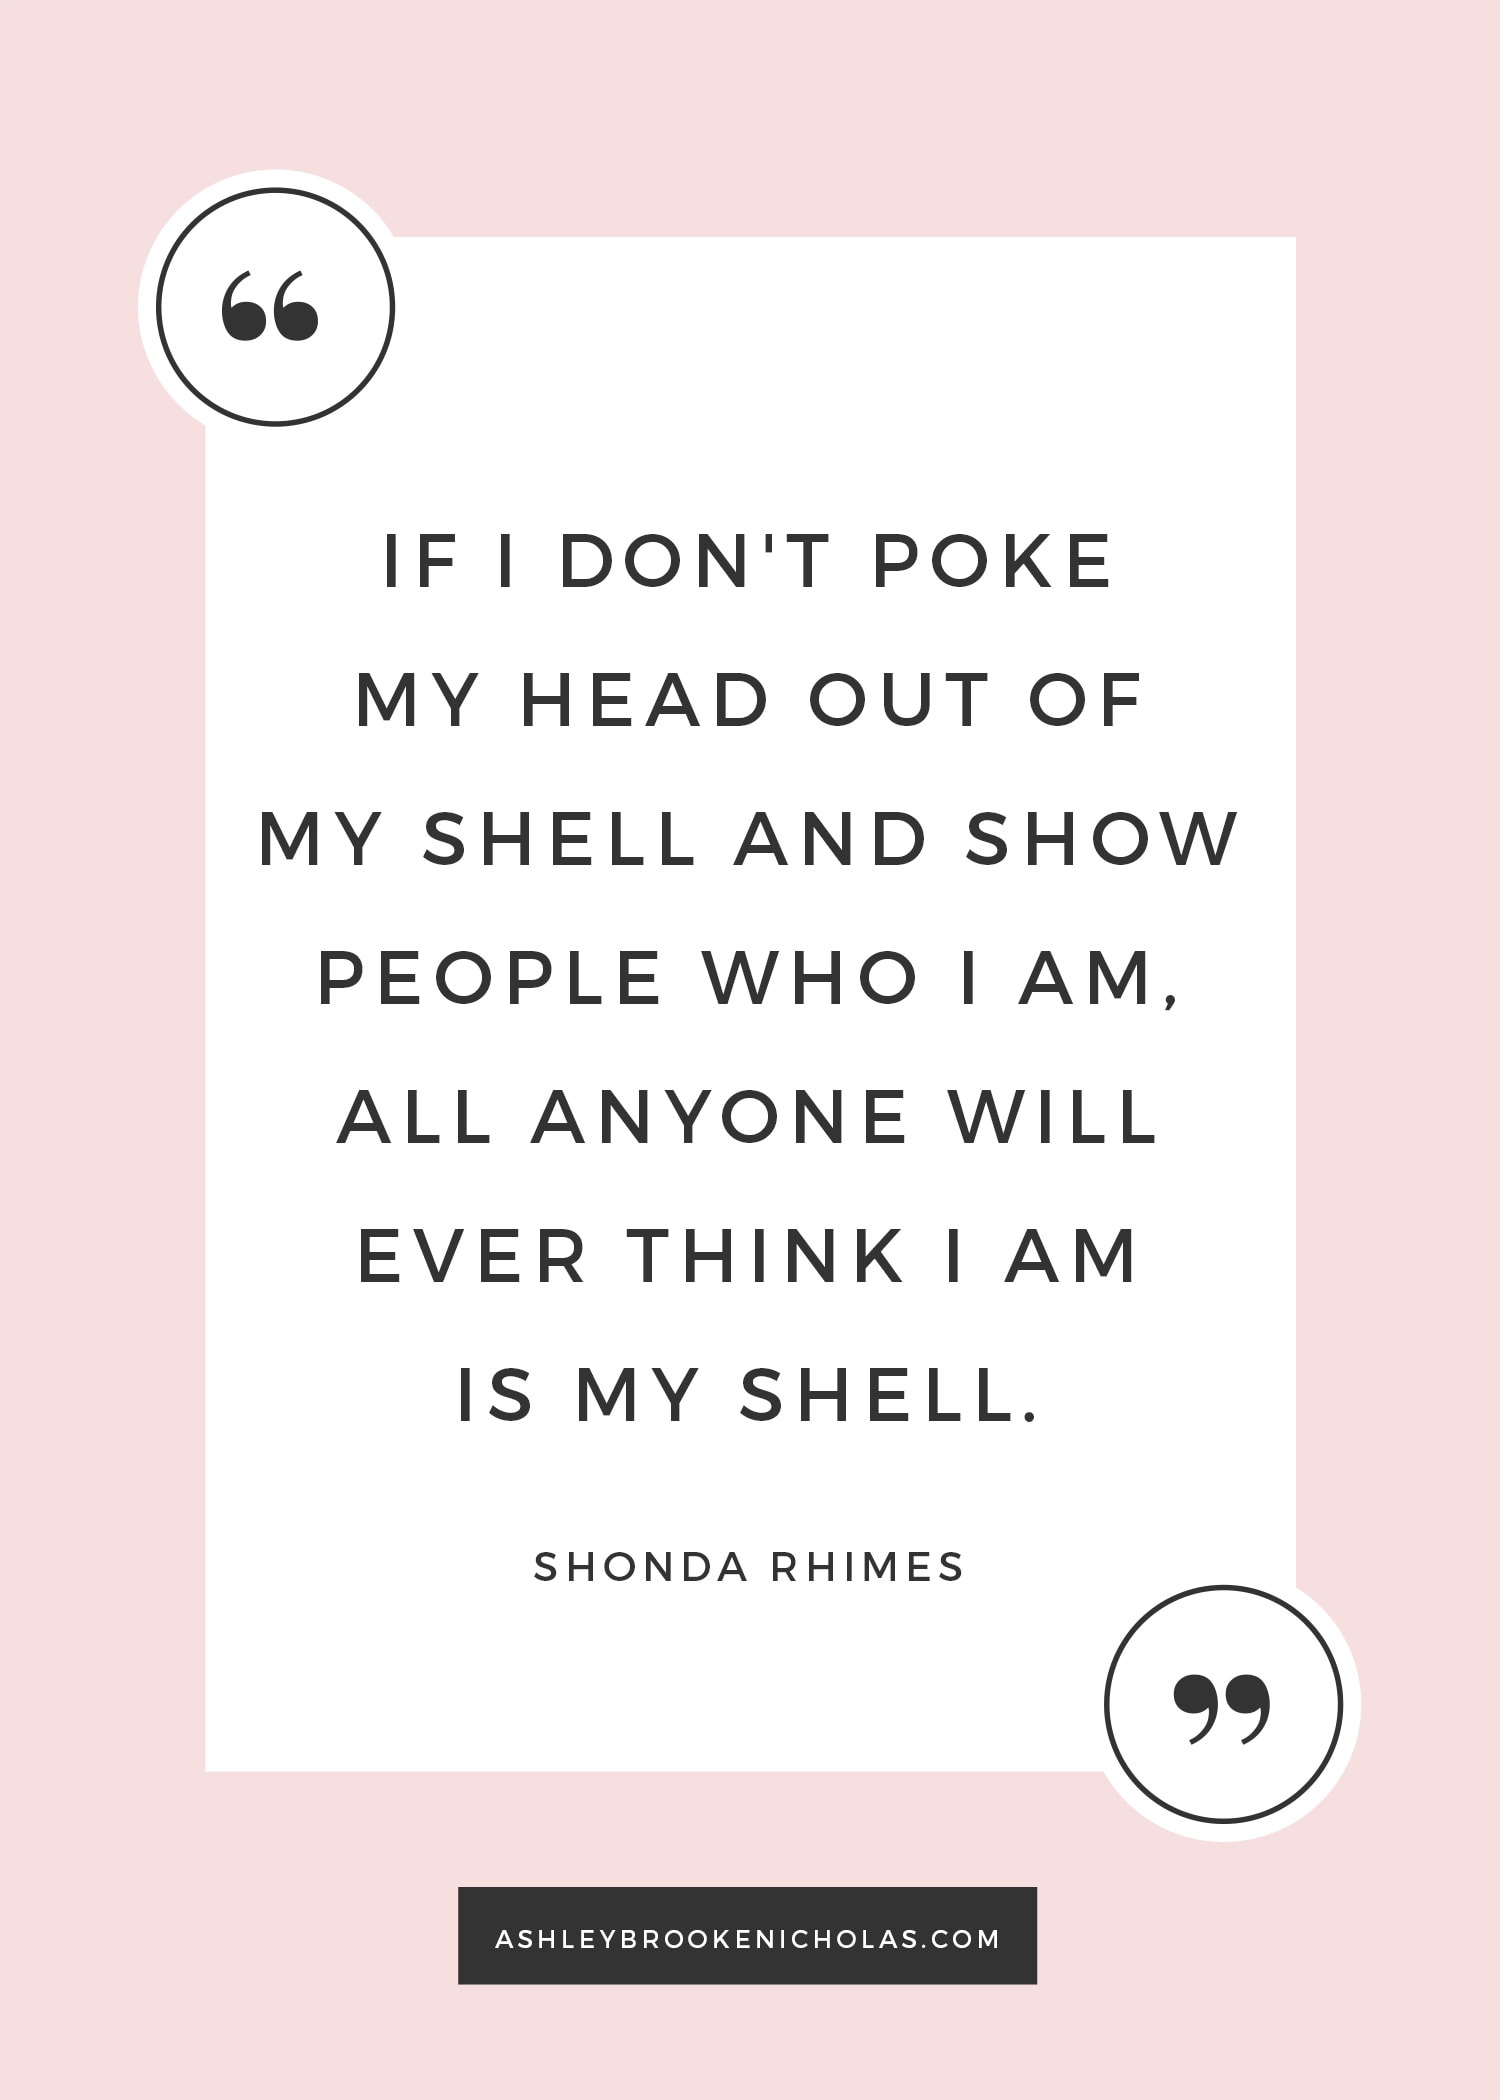 """The best Shonda Rhimes quotes   """"If I don't poke my head out of my shell and show people who I am, all anyone will ever think I am is my shell."""" ― Shonda Rhimes, Year of Yes: How to Dance It Out, Stand In the Sun and Be Your Own Person"""